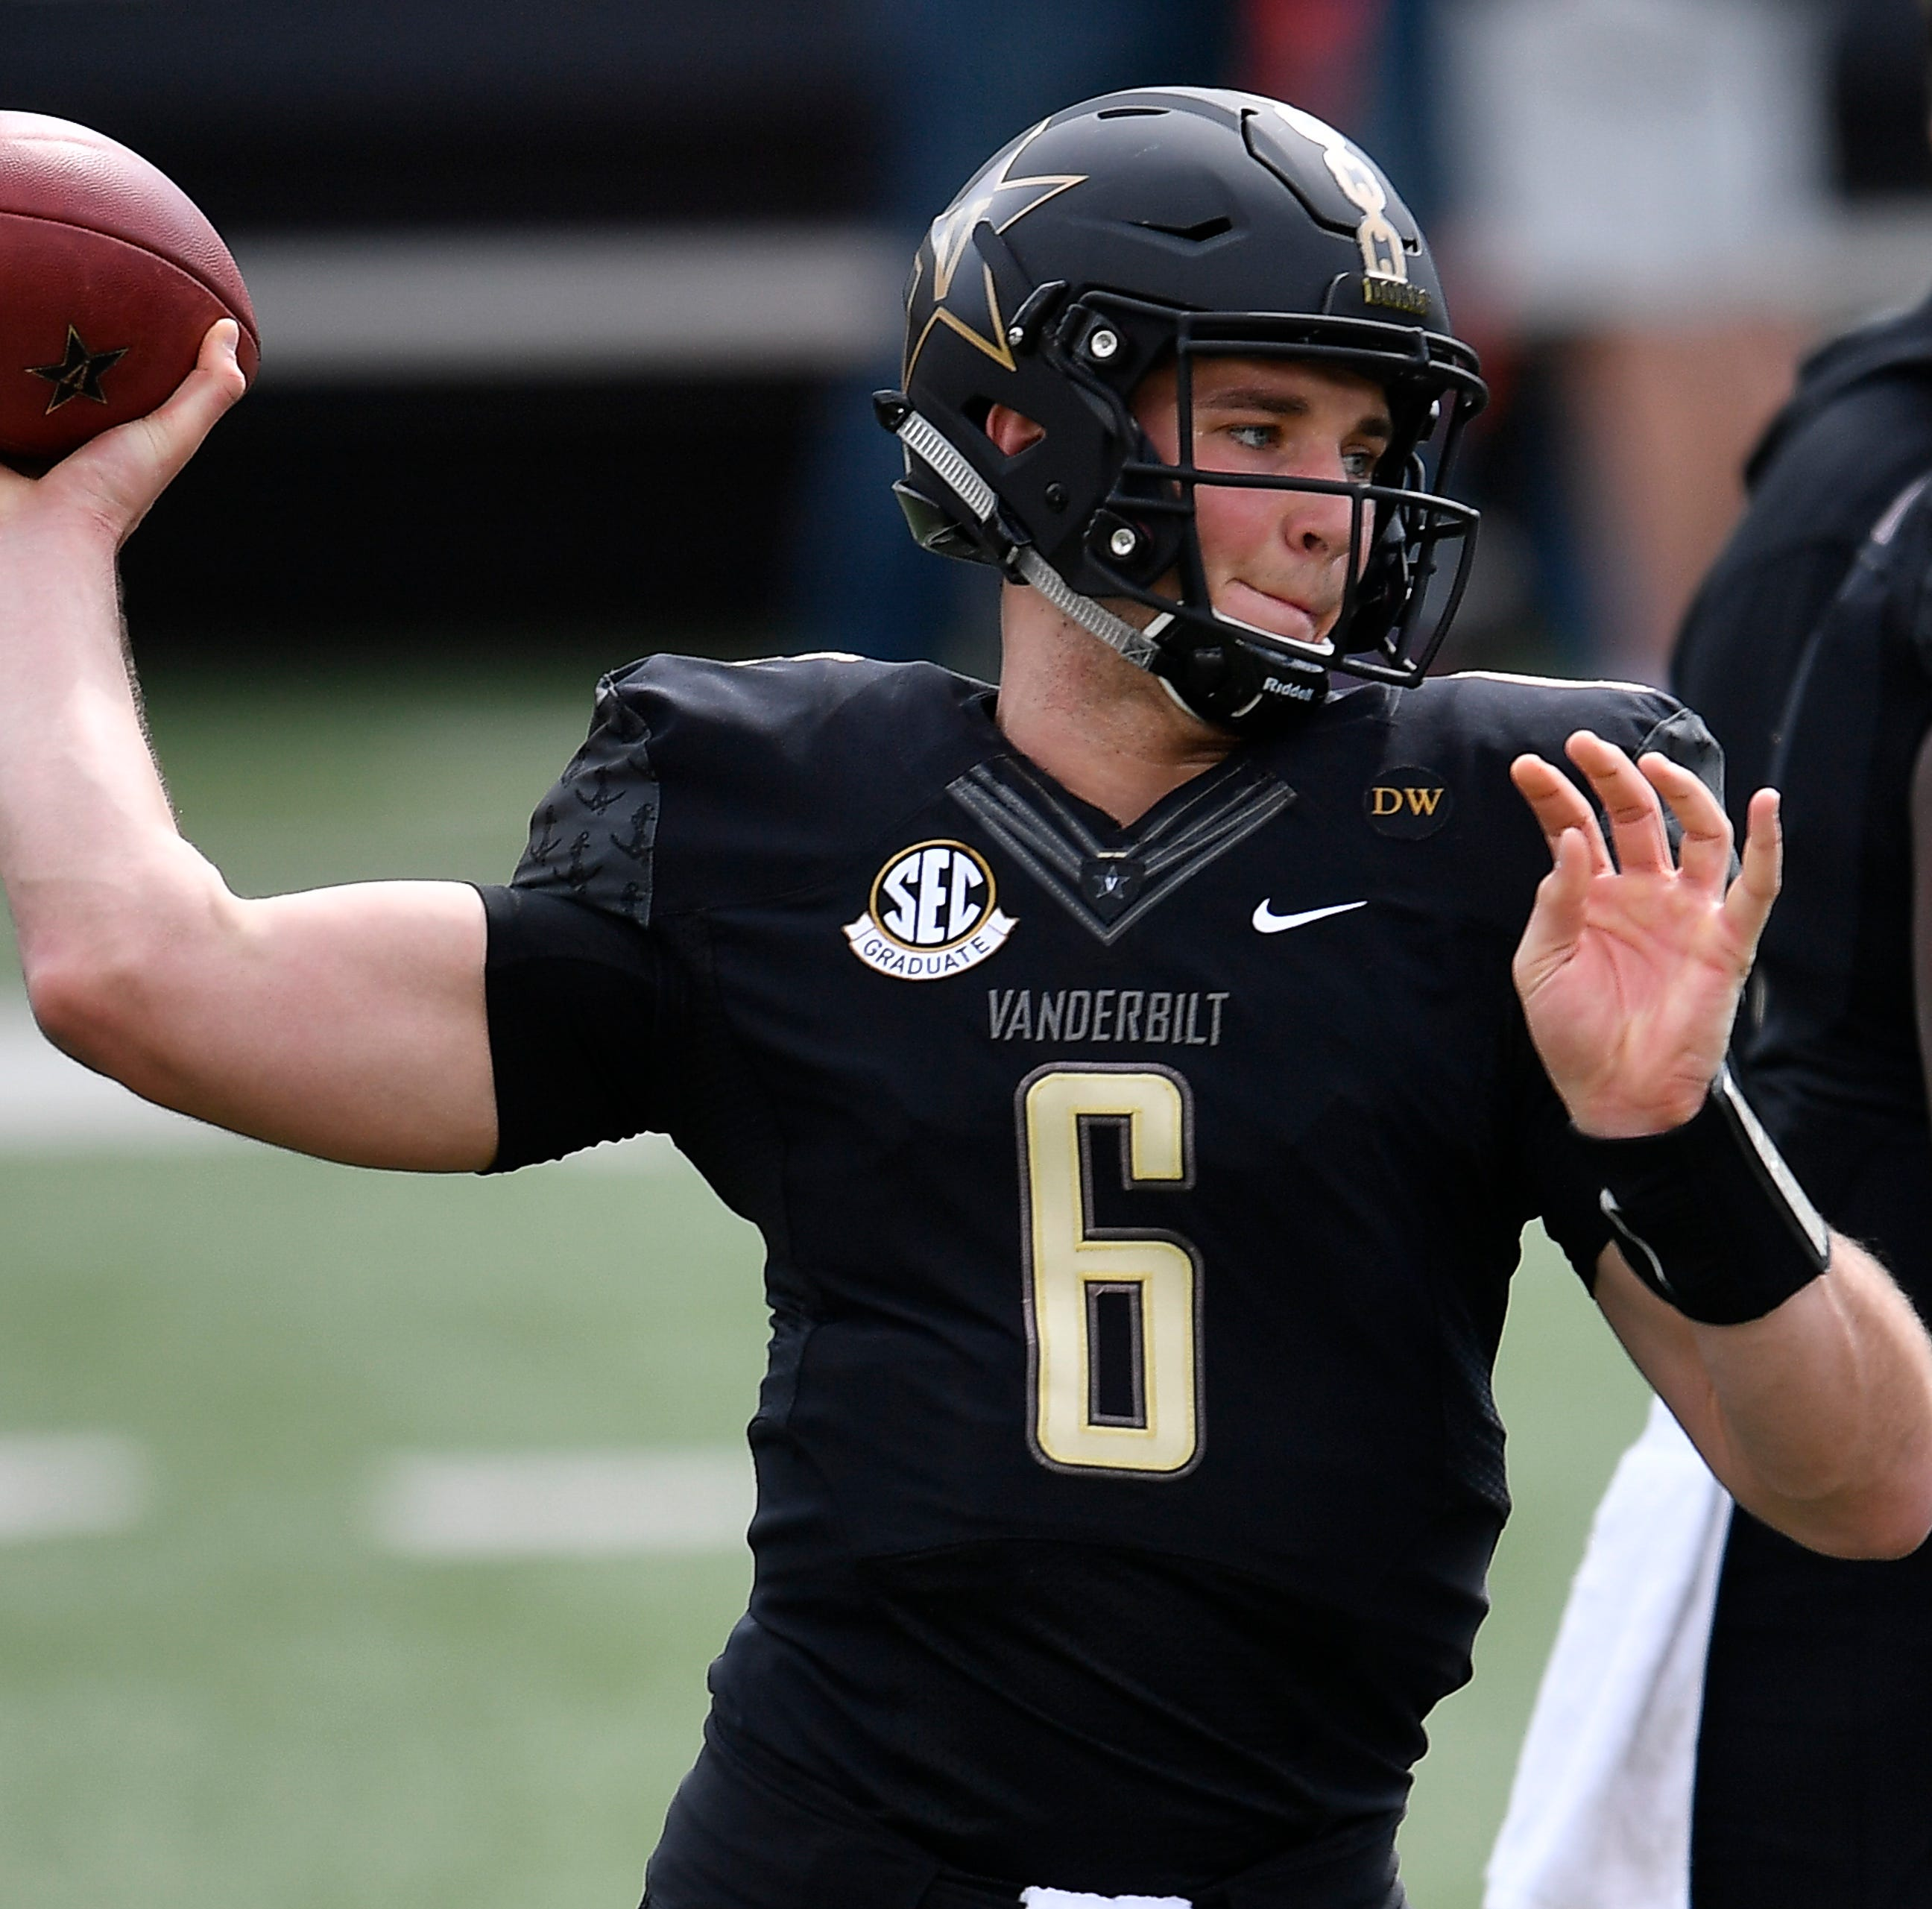 Vanderbilt football spring game: Riley Neal makes good first impression, but QB competition just starting